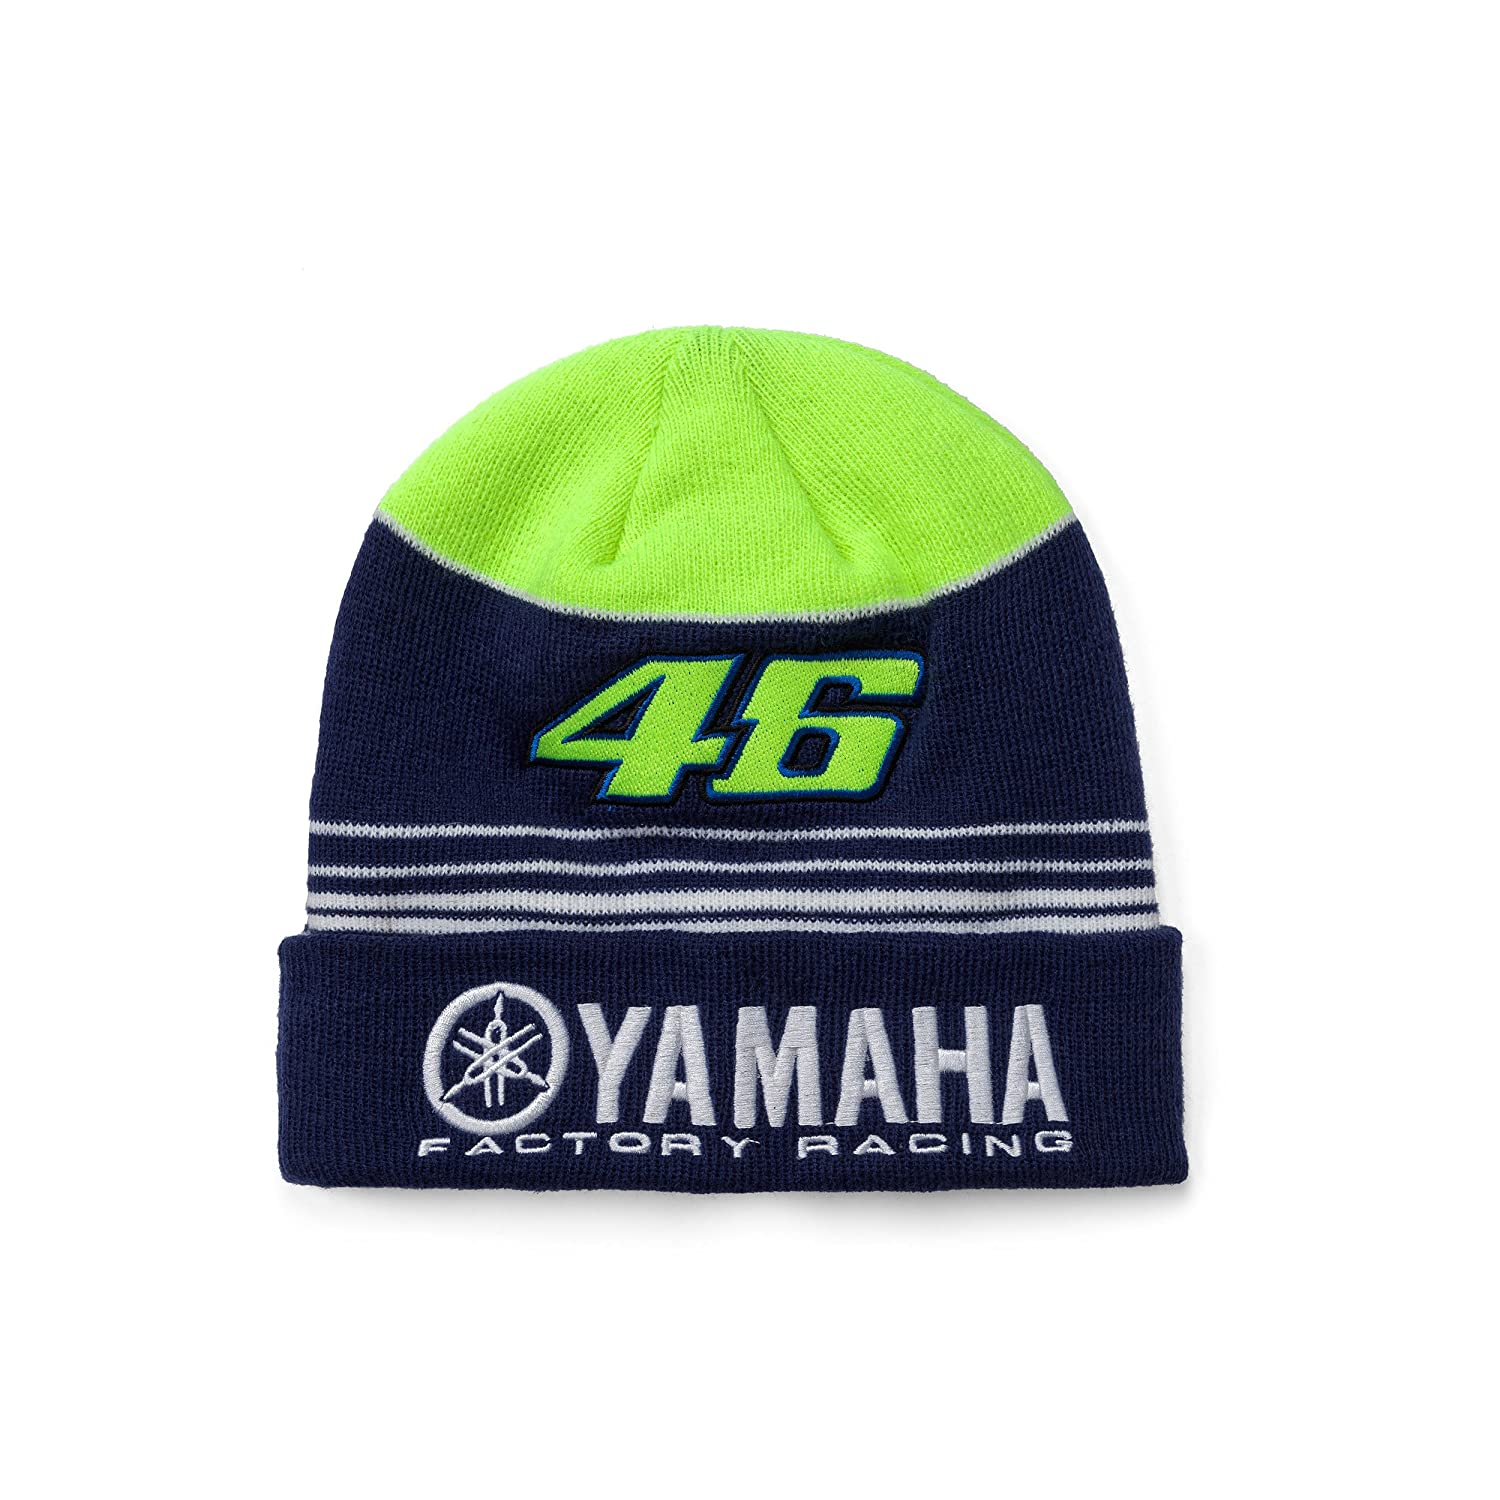 Valentino Rossi VR46 Moto GP Yamaha Factory Racing Team Beanie Officiel 2017 VR/46